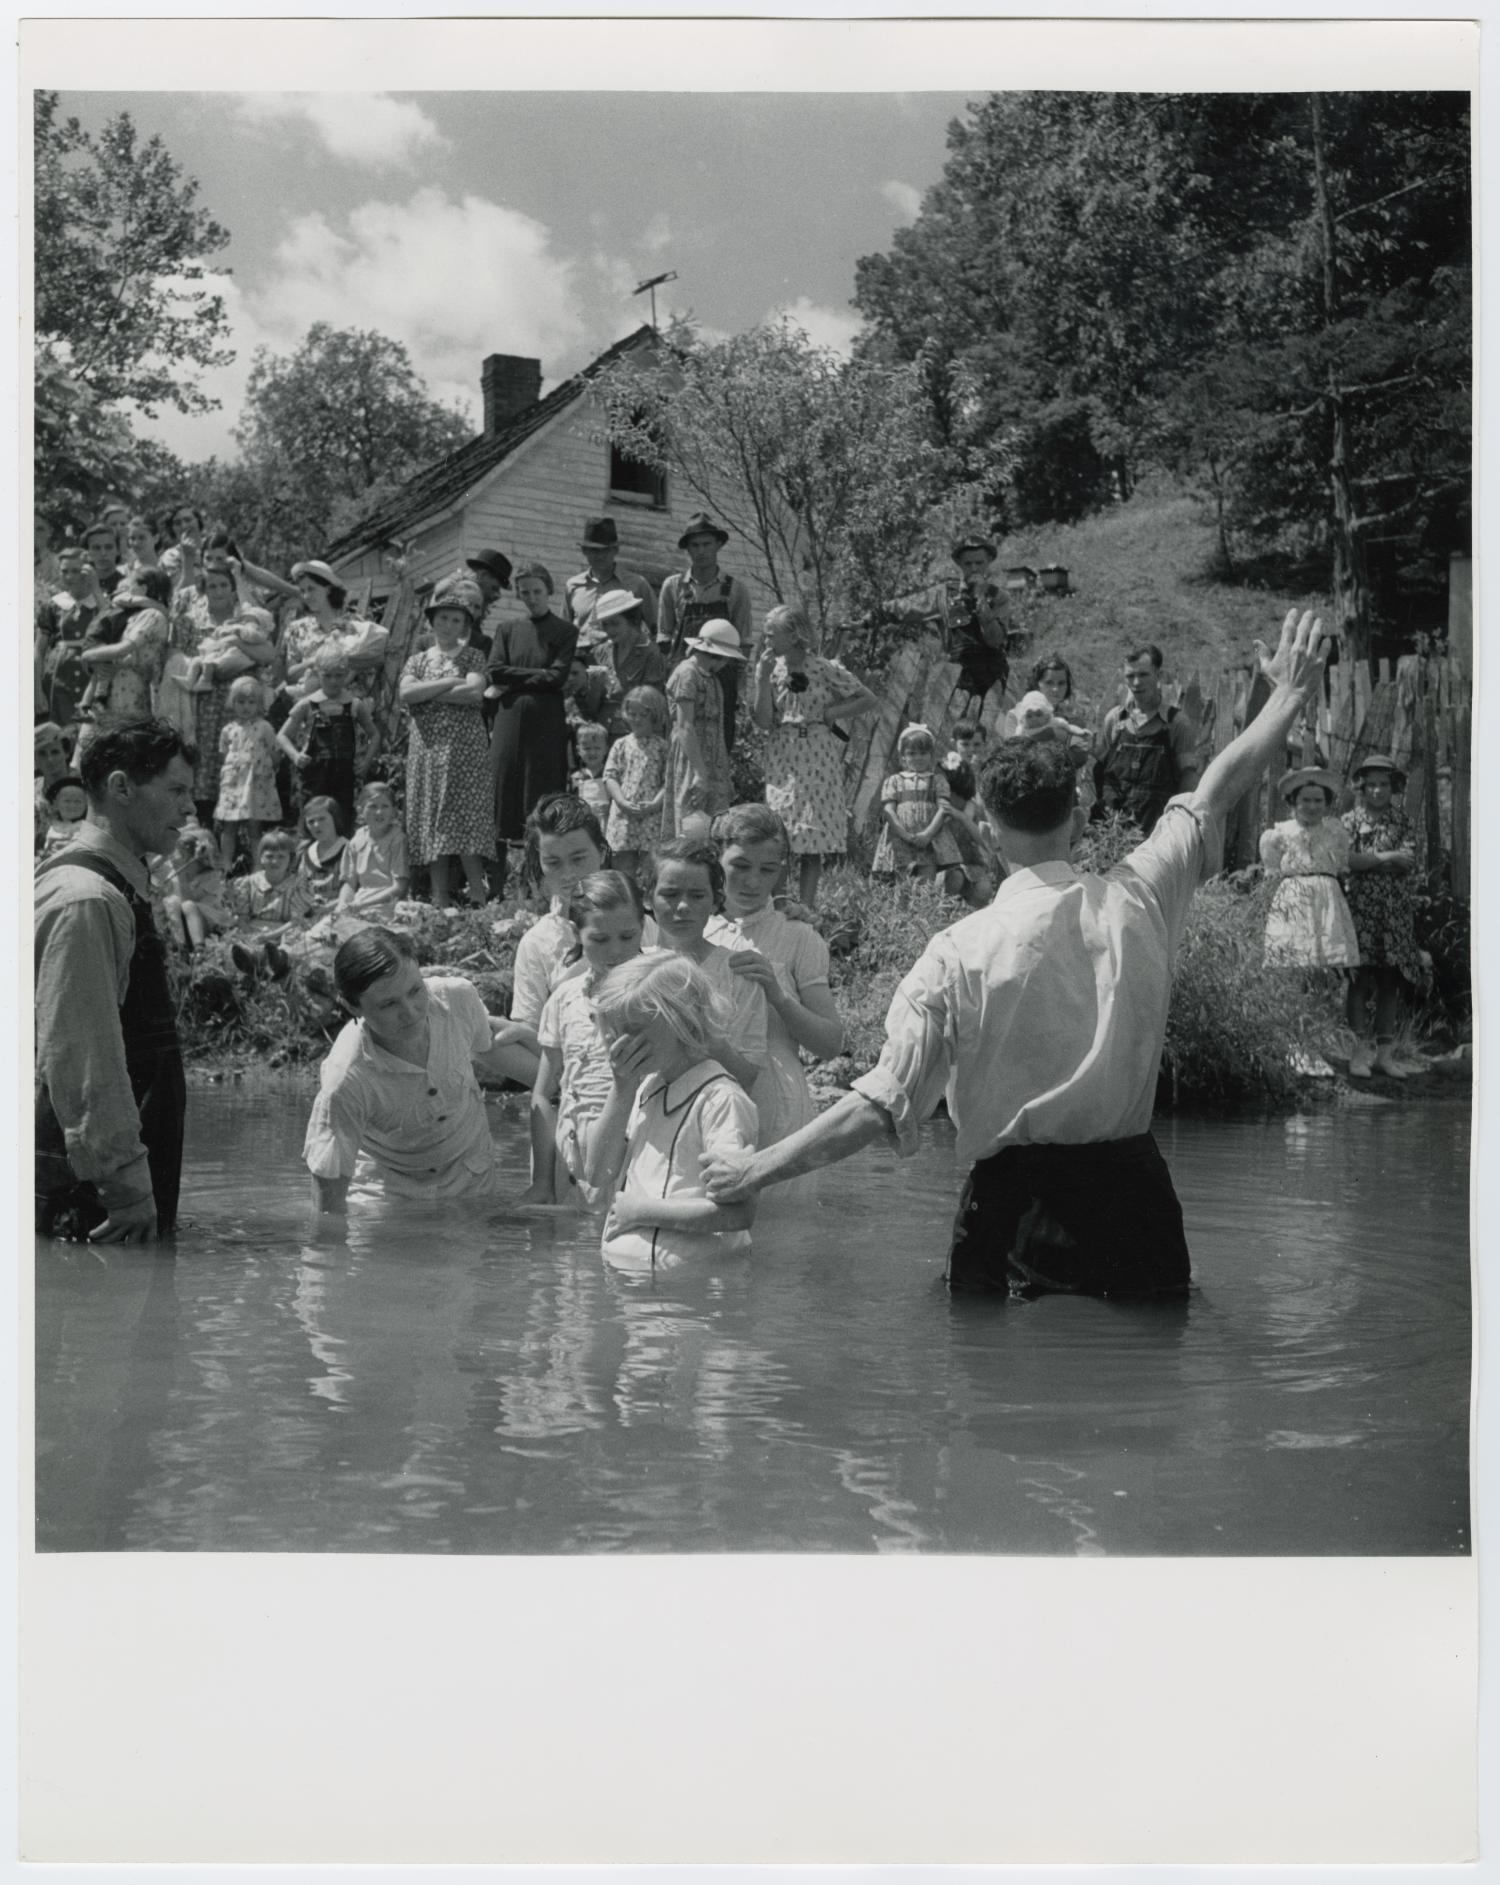 """Baptising in Olde Towne Creek, Narrative by Junebug Clark: Photograph is from 1938 and is shot in Red Hill, Tennessee. One of the first photos made by Joe, Baptising in Olde Towne Creek, has endured to become a favorite and meaningful to many. It bears close scrutiny because of the differing expressions and attitudes of those attending. People have said that they have counted fifty-one people in this picture and I've listened to many a controversy about a TV antenna* appearing in this 1938 photo. The Rev. Hugh Vancel, in charge in this photo, performed countless baptisms, but the ceremony eventually moved indoors. Olde Towne Creek empties into Keg Branch, a creek that runs though our property, about three miles left of your view point. To your right, about a mile, is the Clark family cemetery where Joe was laid to rest in December of 1989. In 1981 the Smithsonian Institute displayed a print of this photo for use in an exhibit """"Rights of Passage."""" It was published in the autobiography of Dolly Parton and as the poster for the Wolf Trap Music Festival. Jb. *lightning rod,"""